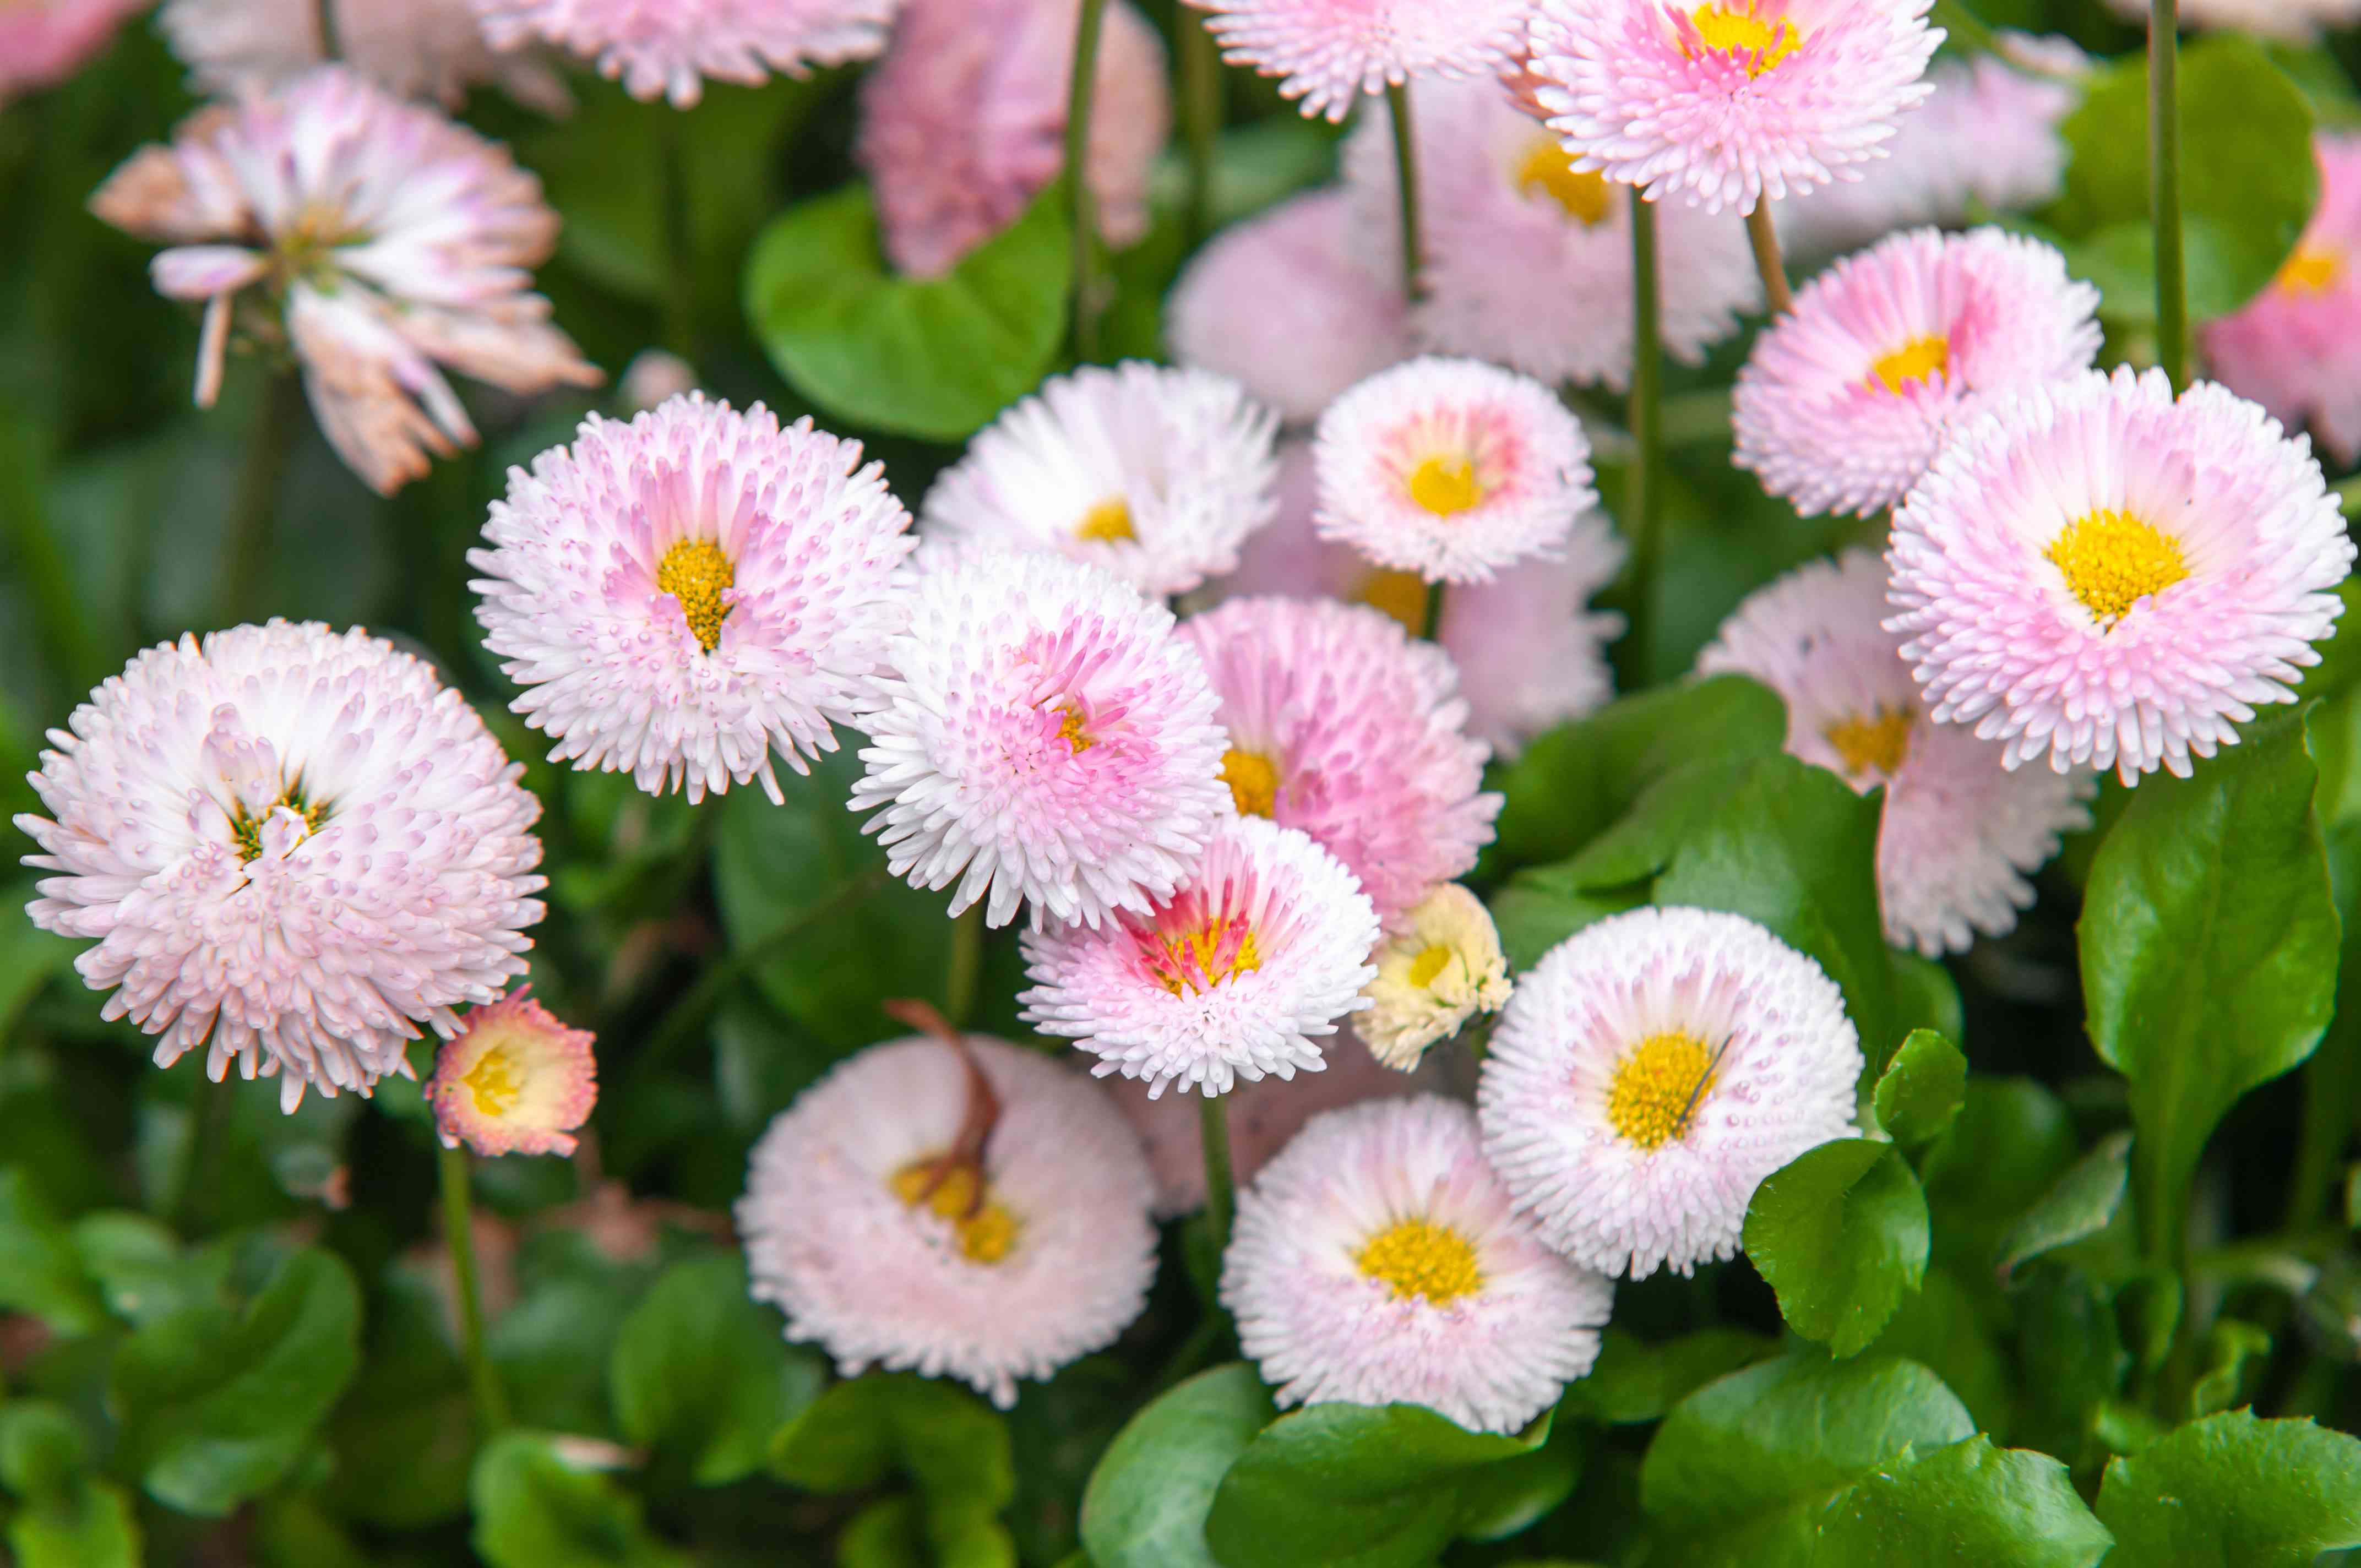 English daisies with pink centered flowers